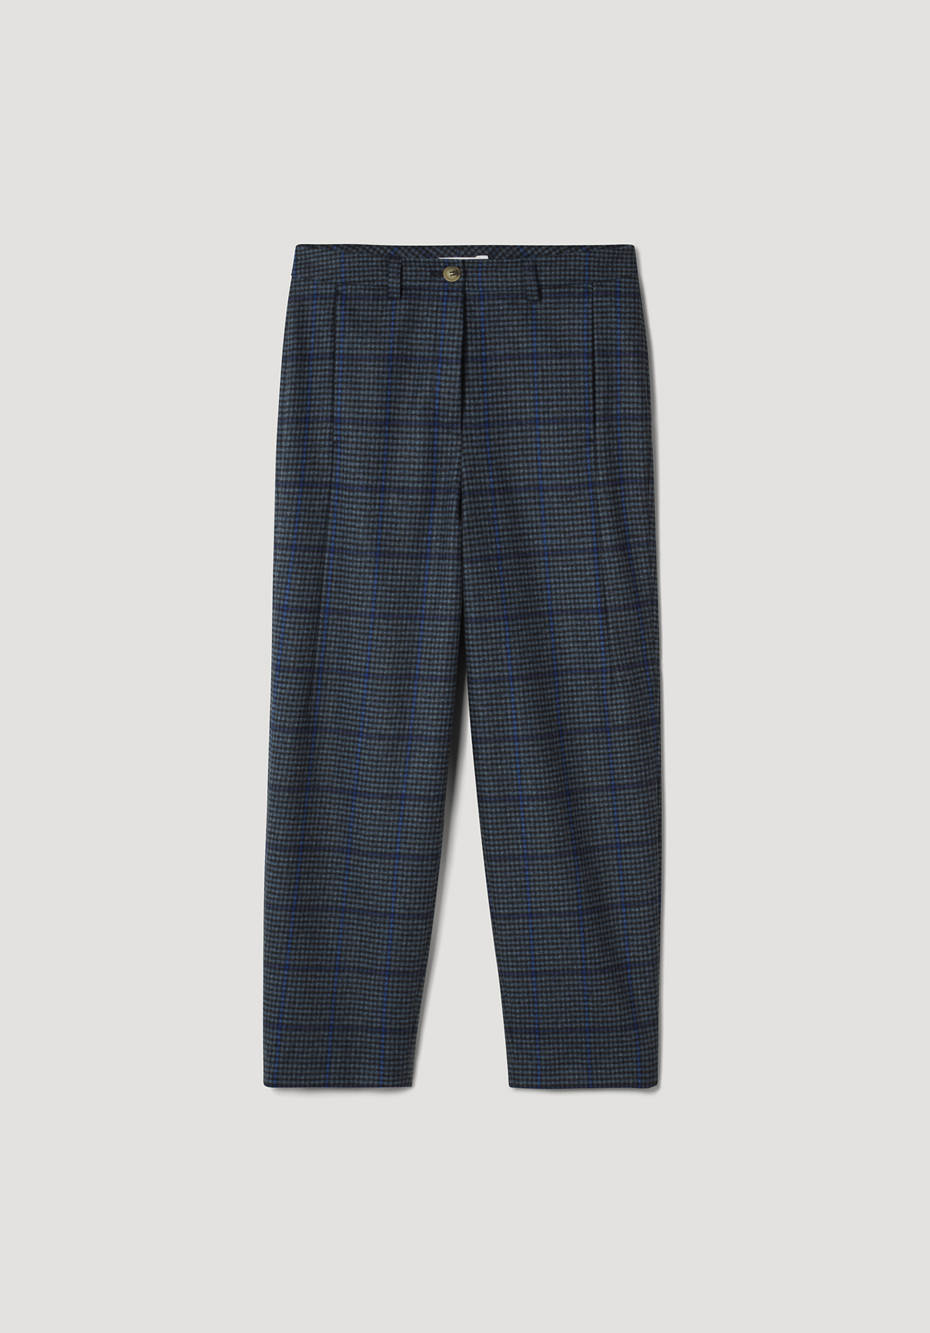 Relaxed fit pants made of pure organic merino wool